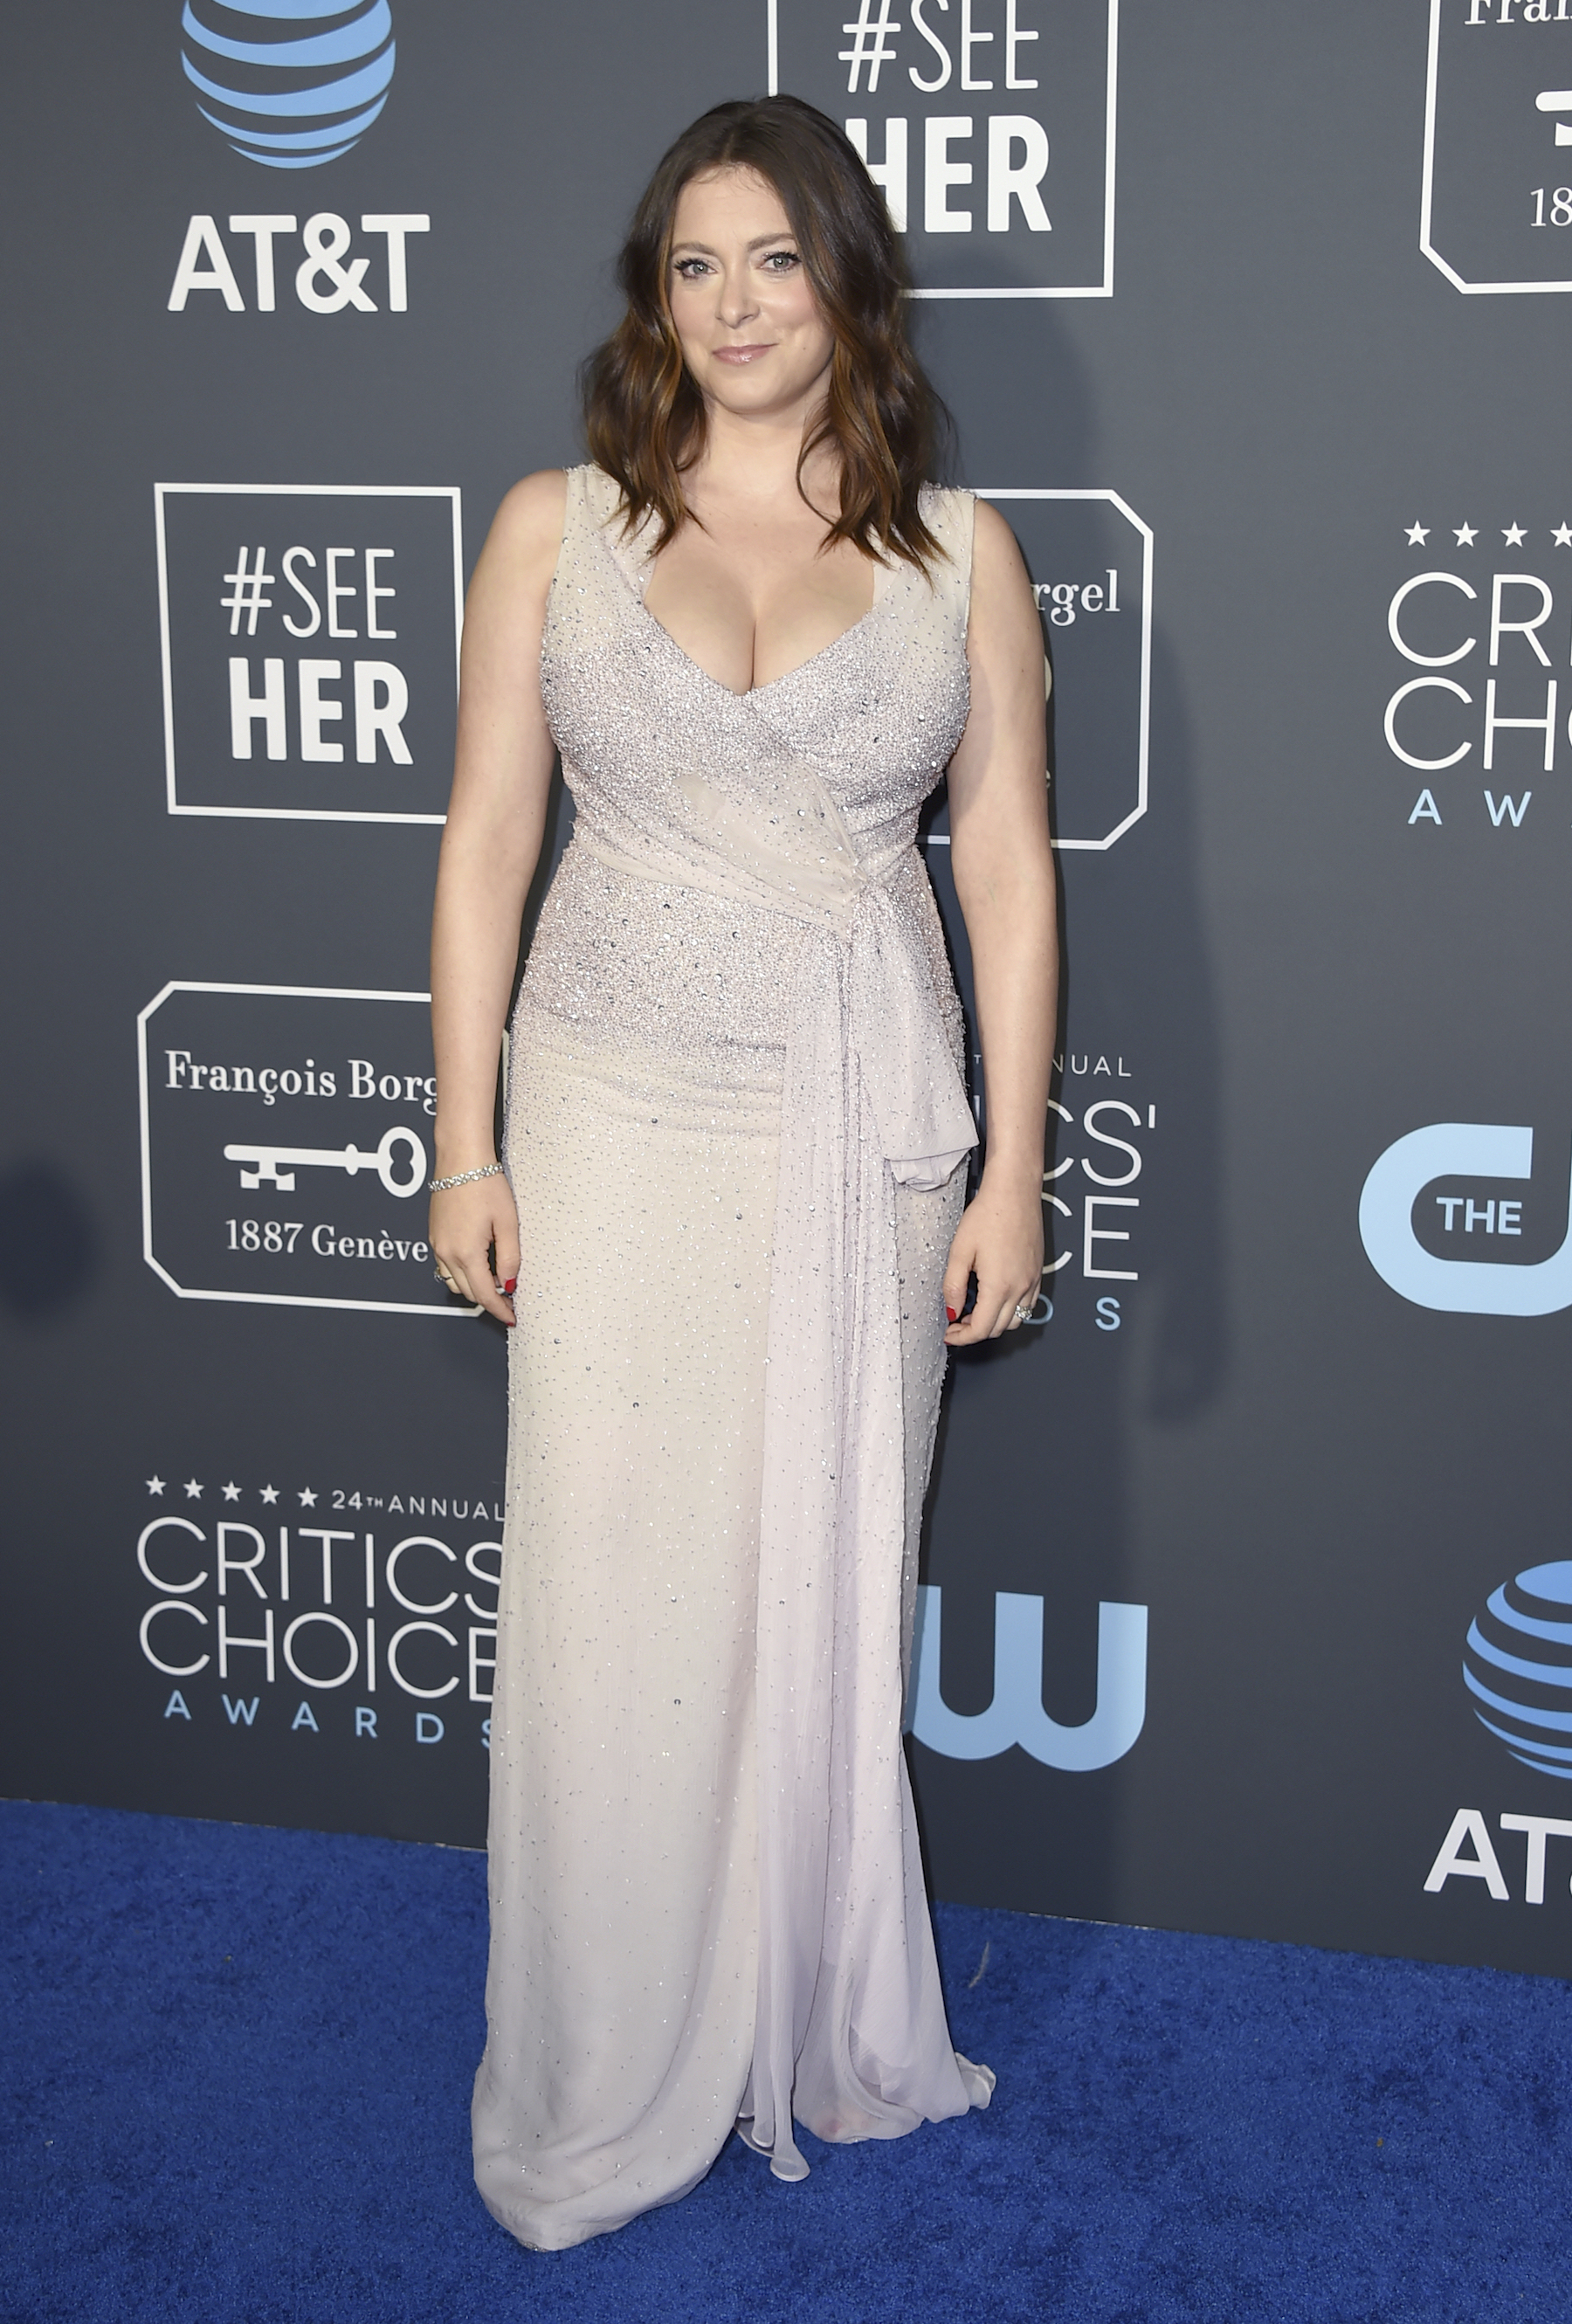 "<div class=""meta image-caption""><div class=""origin-logo origin-image ap""><span>AP</span></div><span class=""caption-text"">Rachel Bloom arrives at the 24th annual Critics' Choice Awards on Sunday, Jan. 13, 2019, at the Barker Hangar in Santa Monica, Calif. (Jordan Strauss/Invision/AP)</span></div>"